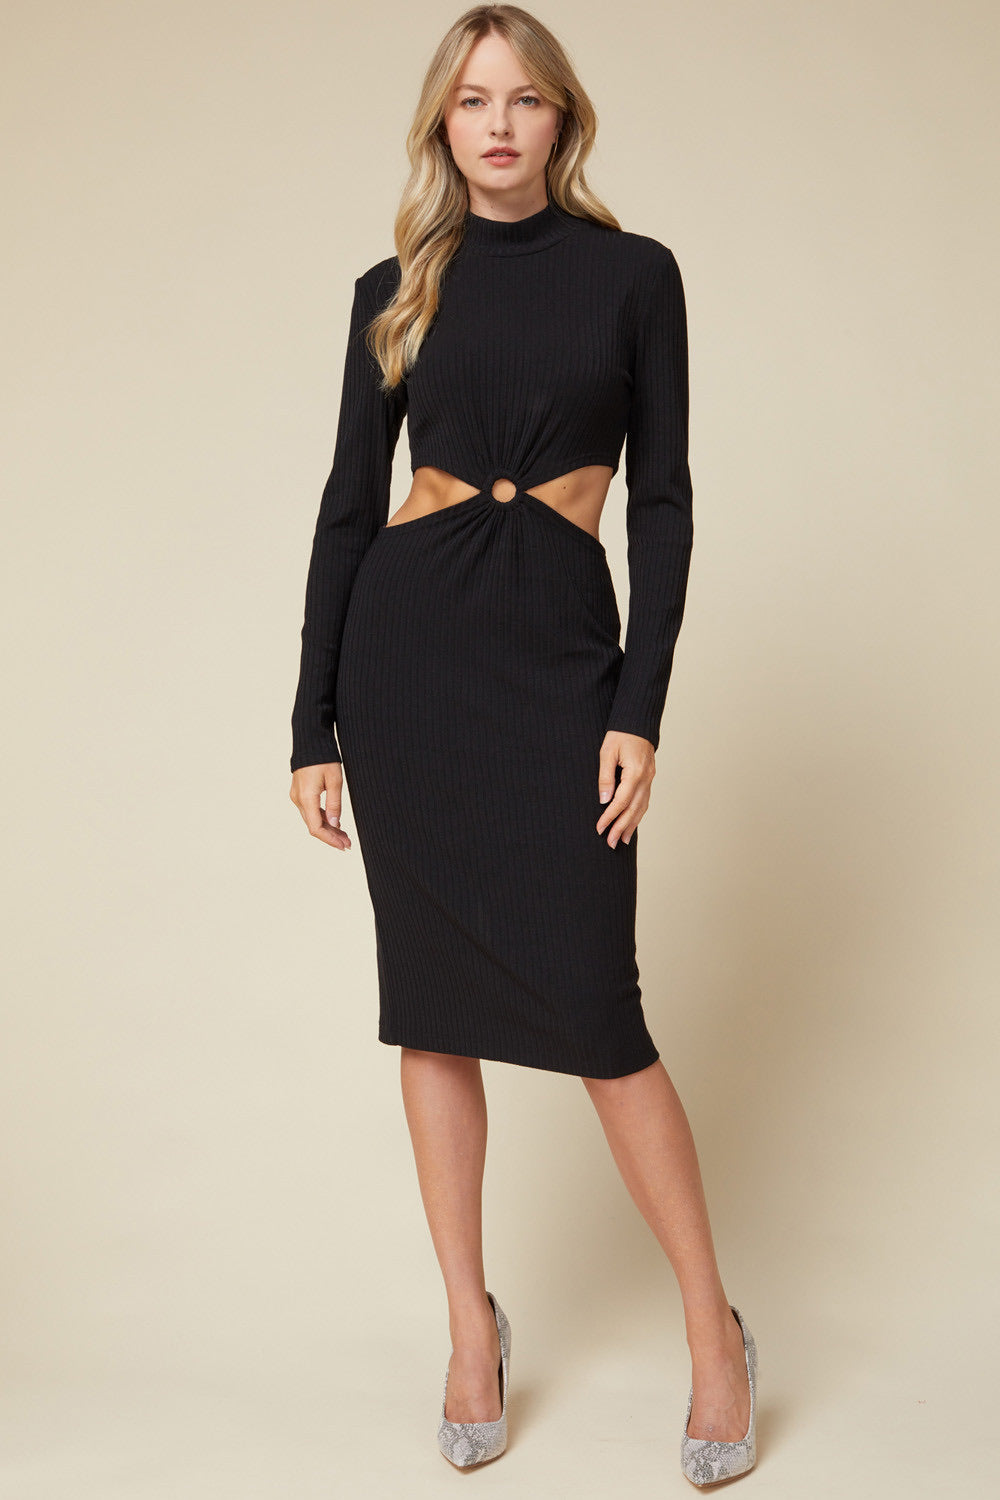 She's Electric Cut-Out Dress - Black